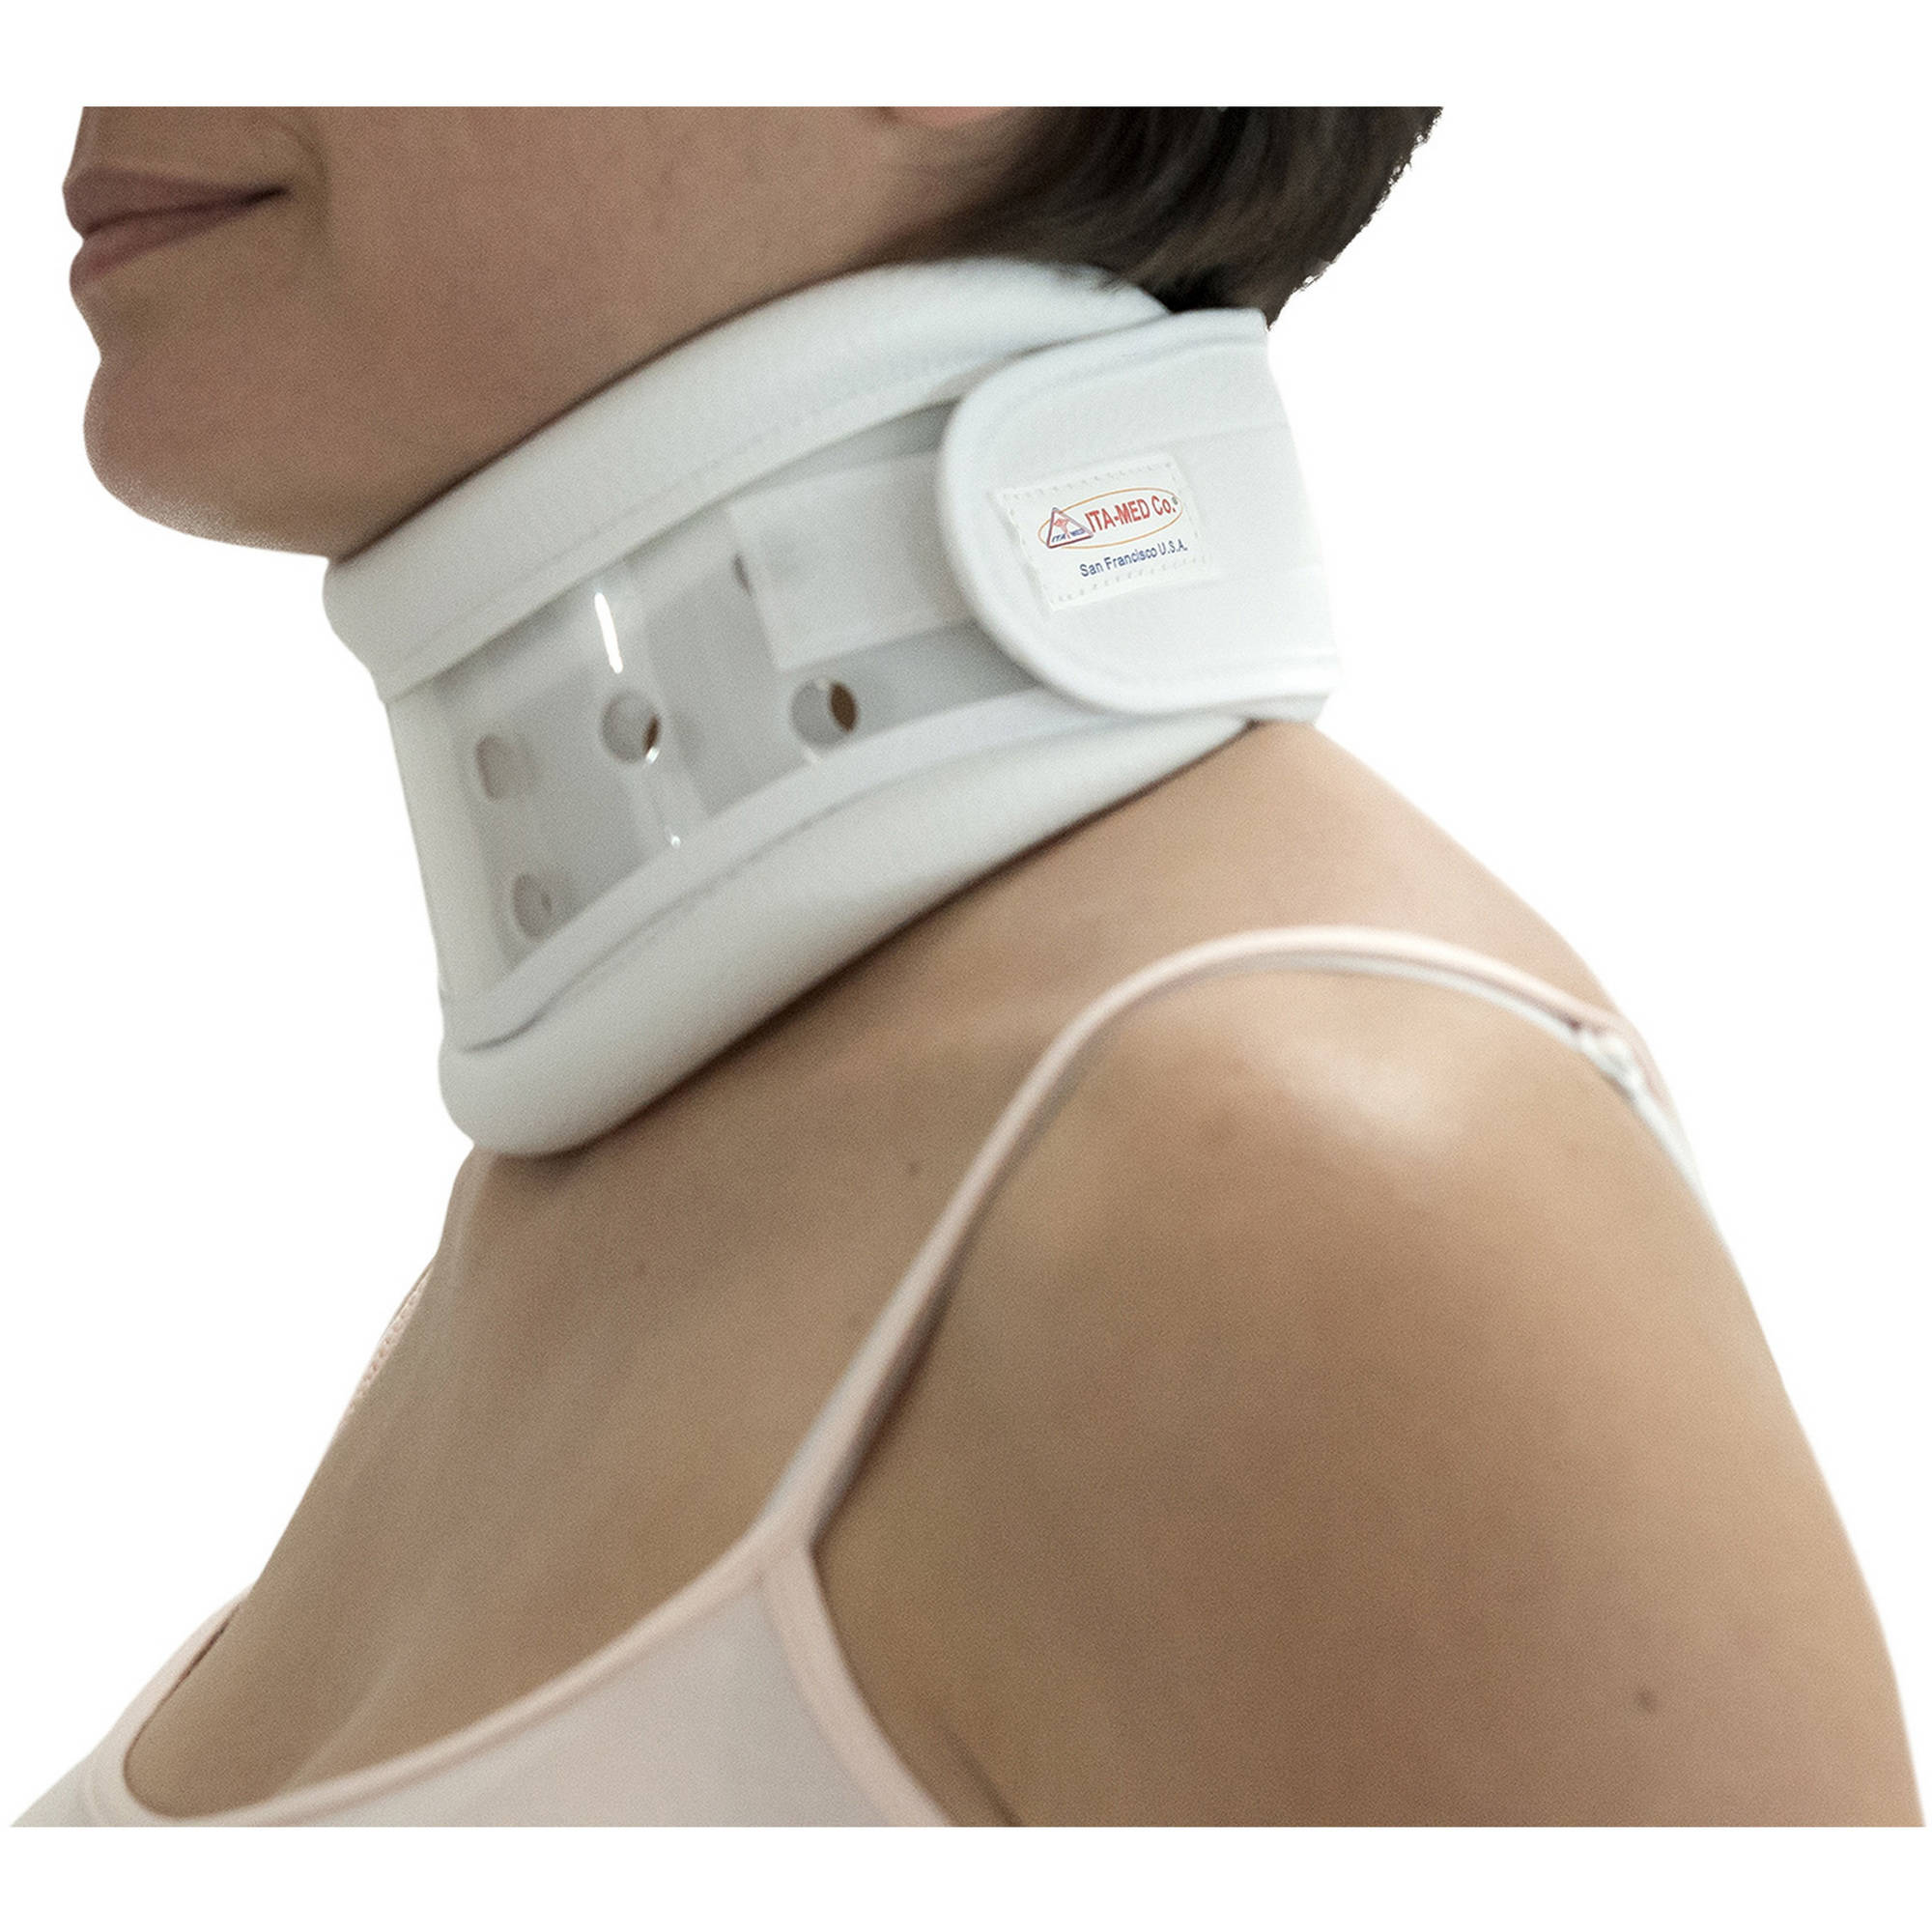 ITA-MED Rigid Plastic Cervical Collar: CC-260